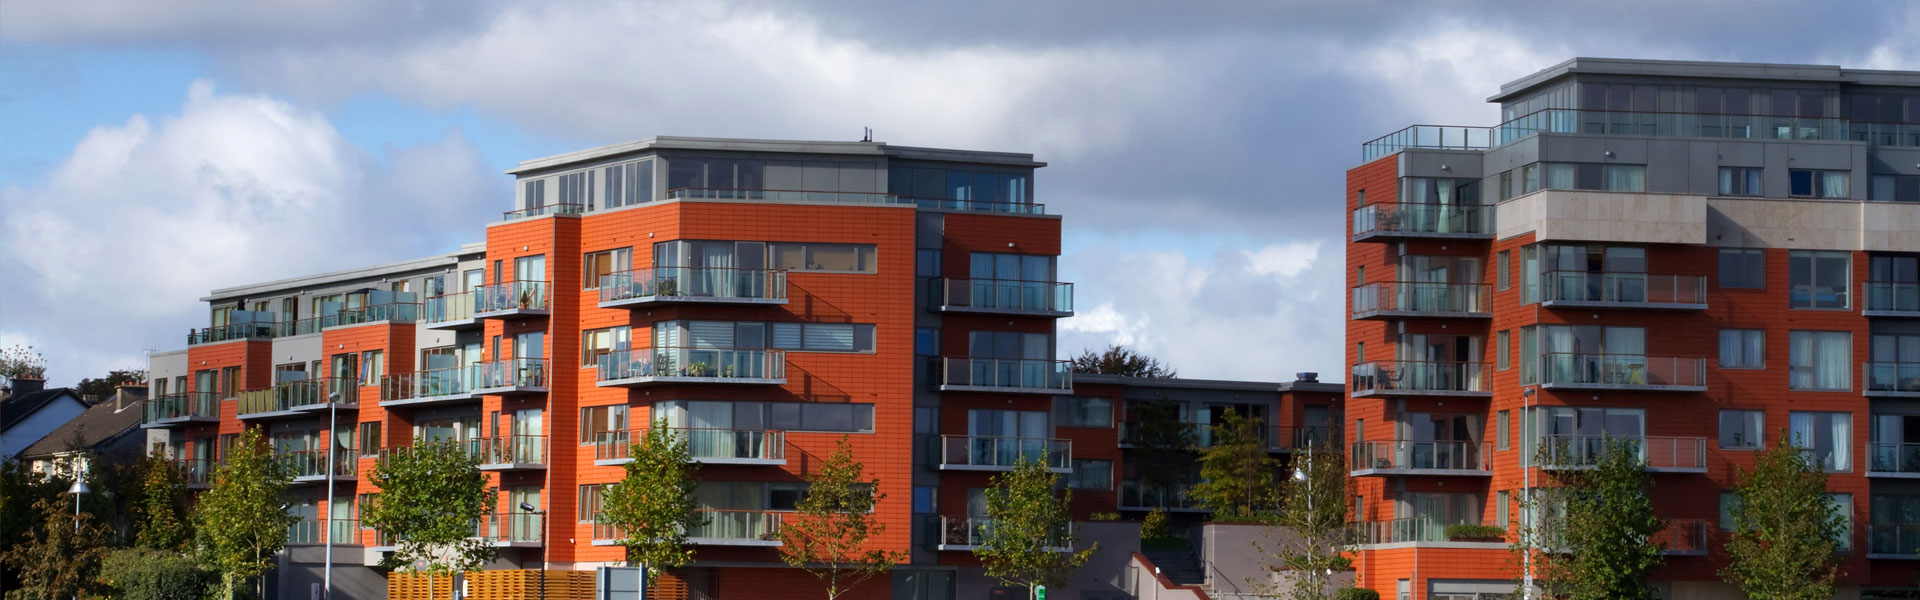 professional Commercial property management in Rathcoole